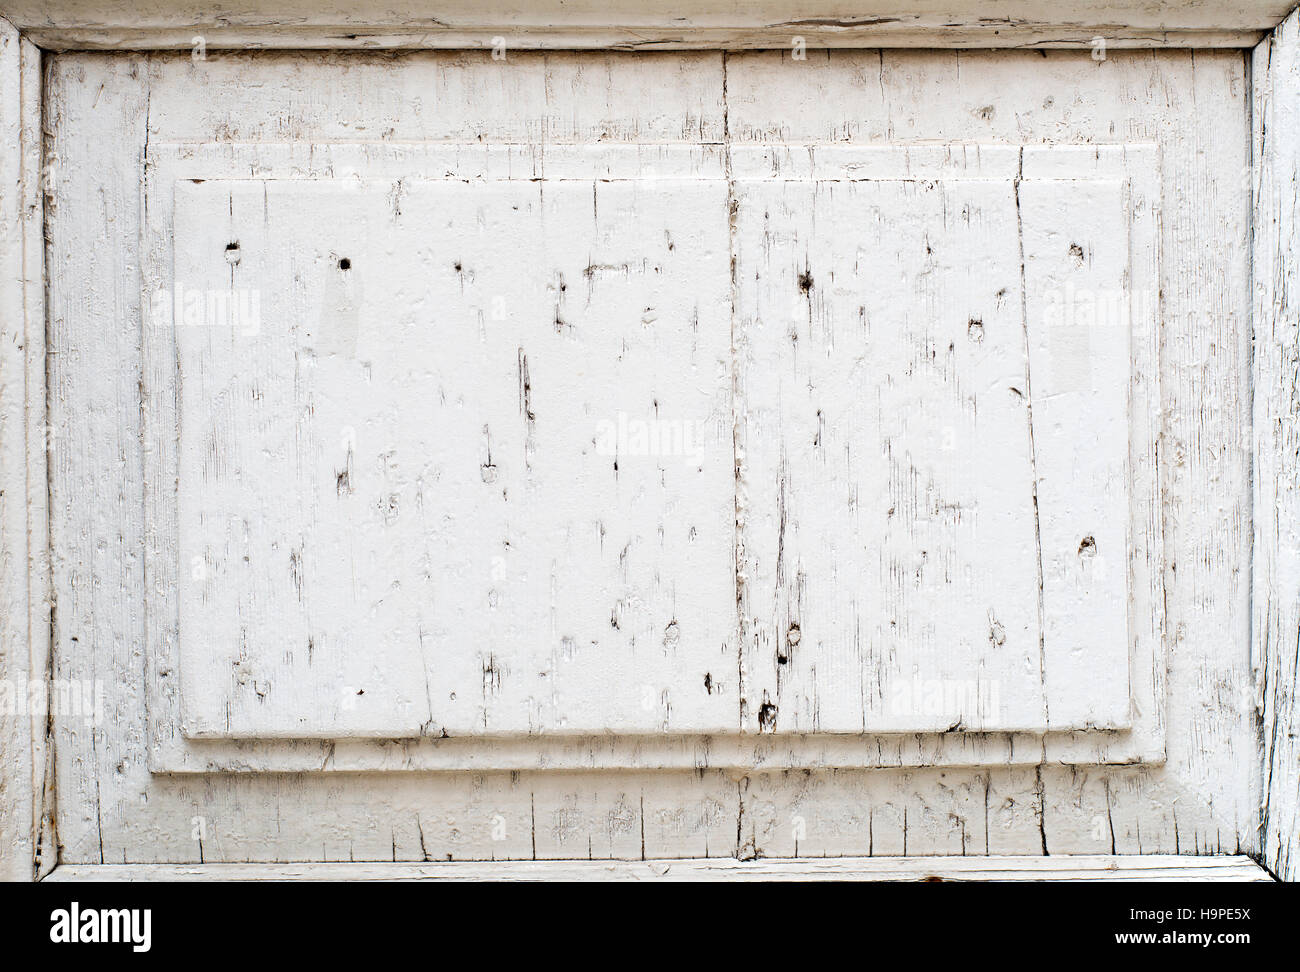 Wood Door Frame Stock Photos & Wood Door Frame Stock Images - Alamy